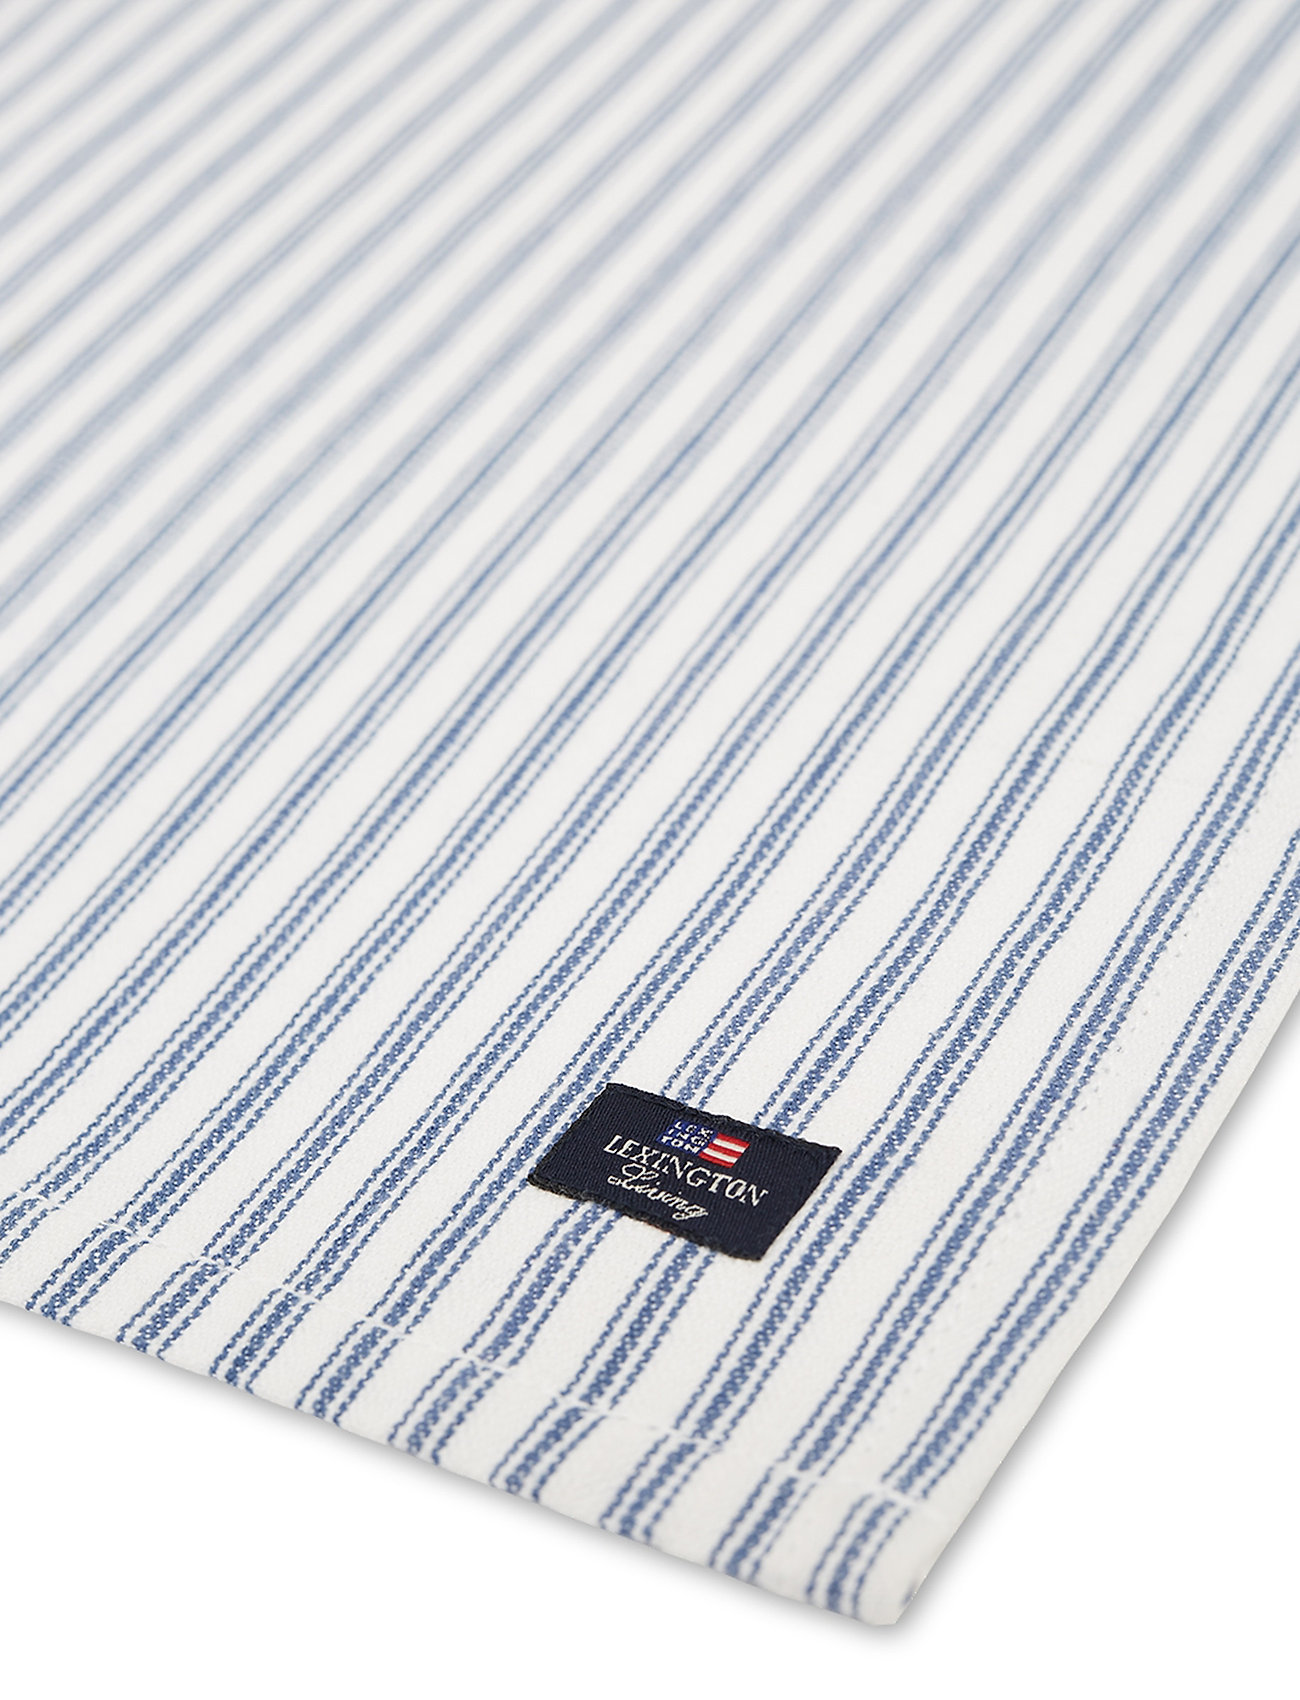 Lexington Home - Icons Cotton Herringbone Striped Napkin - pöytätabletit - blue/white - 1